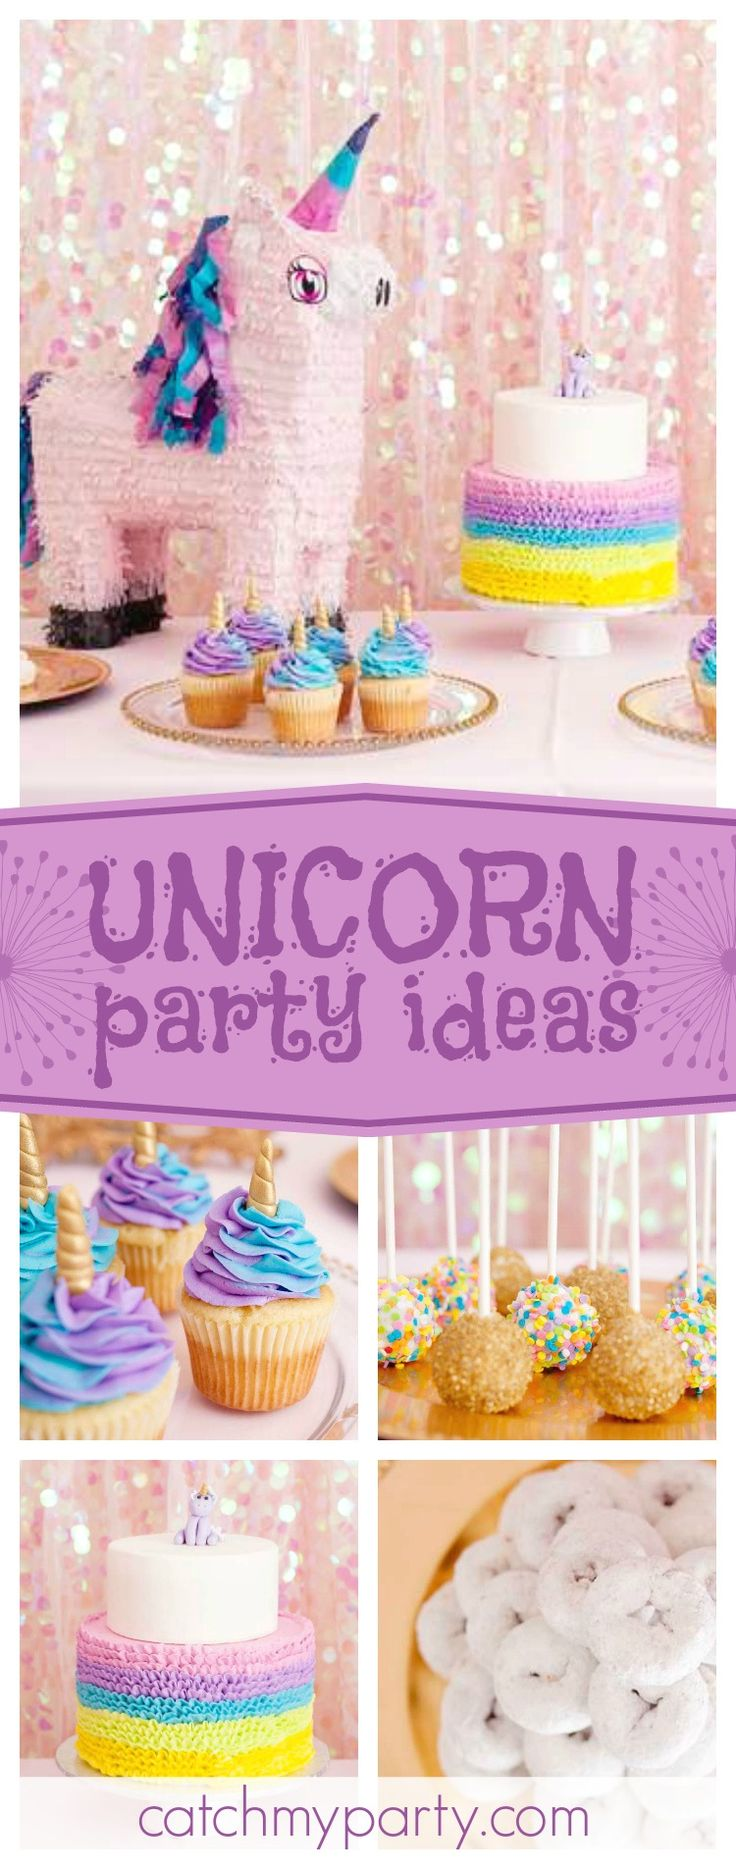 279 best unicorn parties images on pinterest unicorn for Decoration ideas 7th birthday party